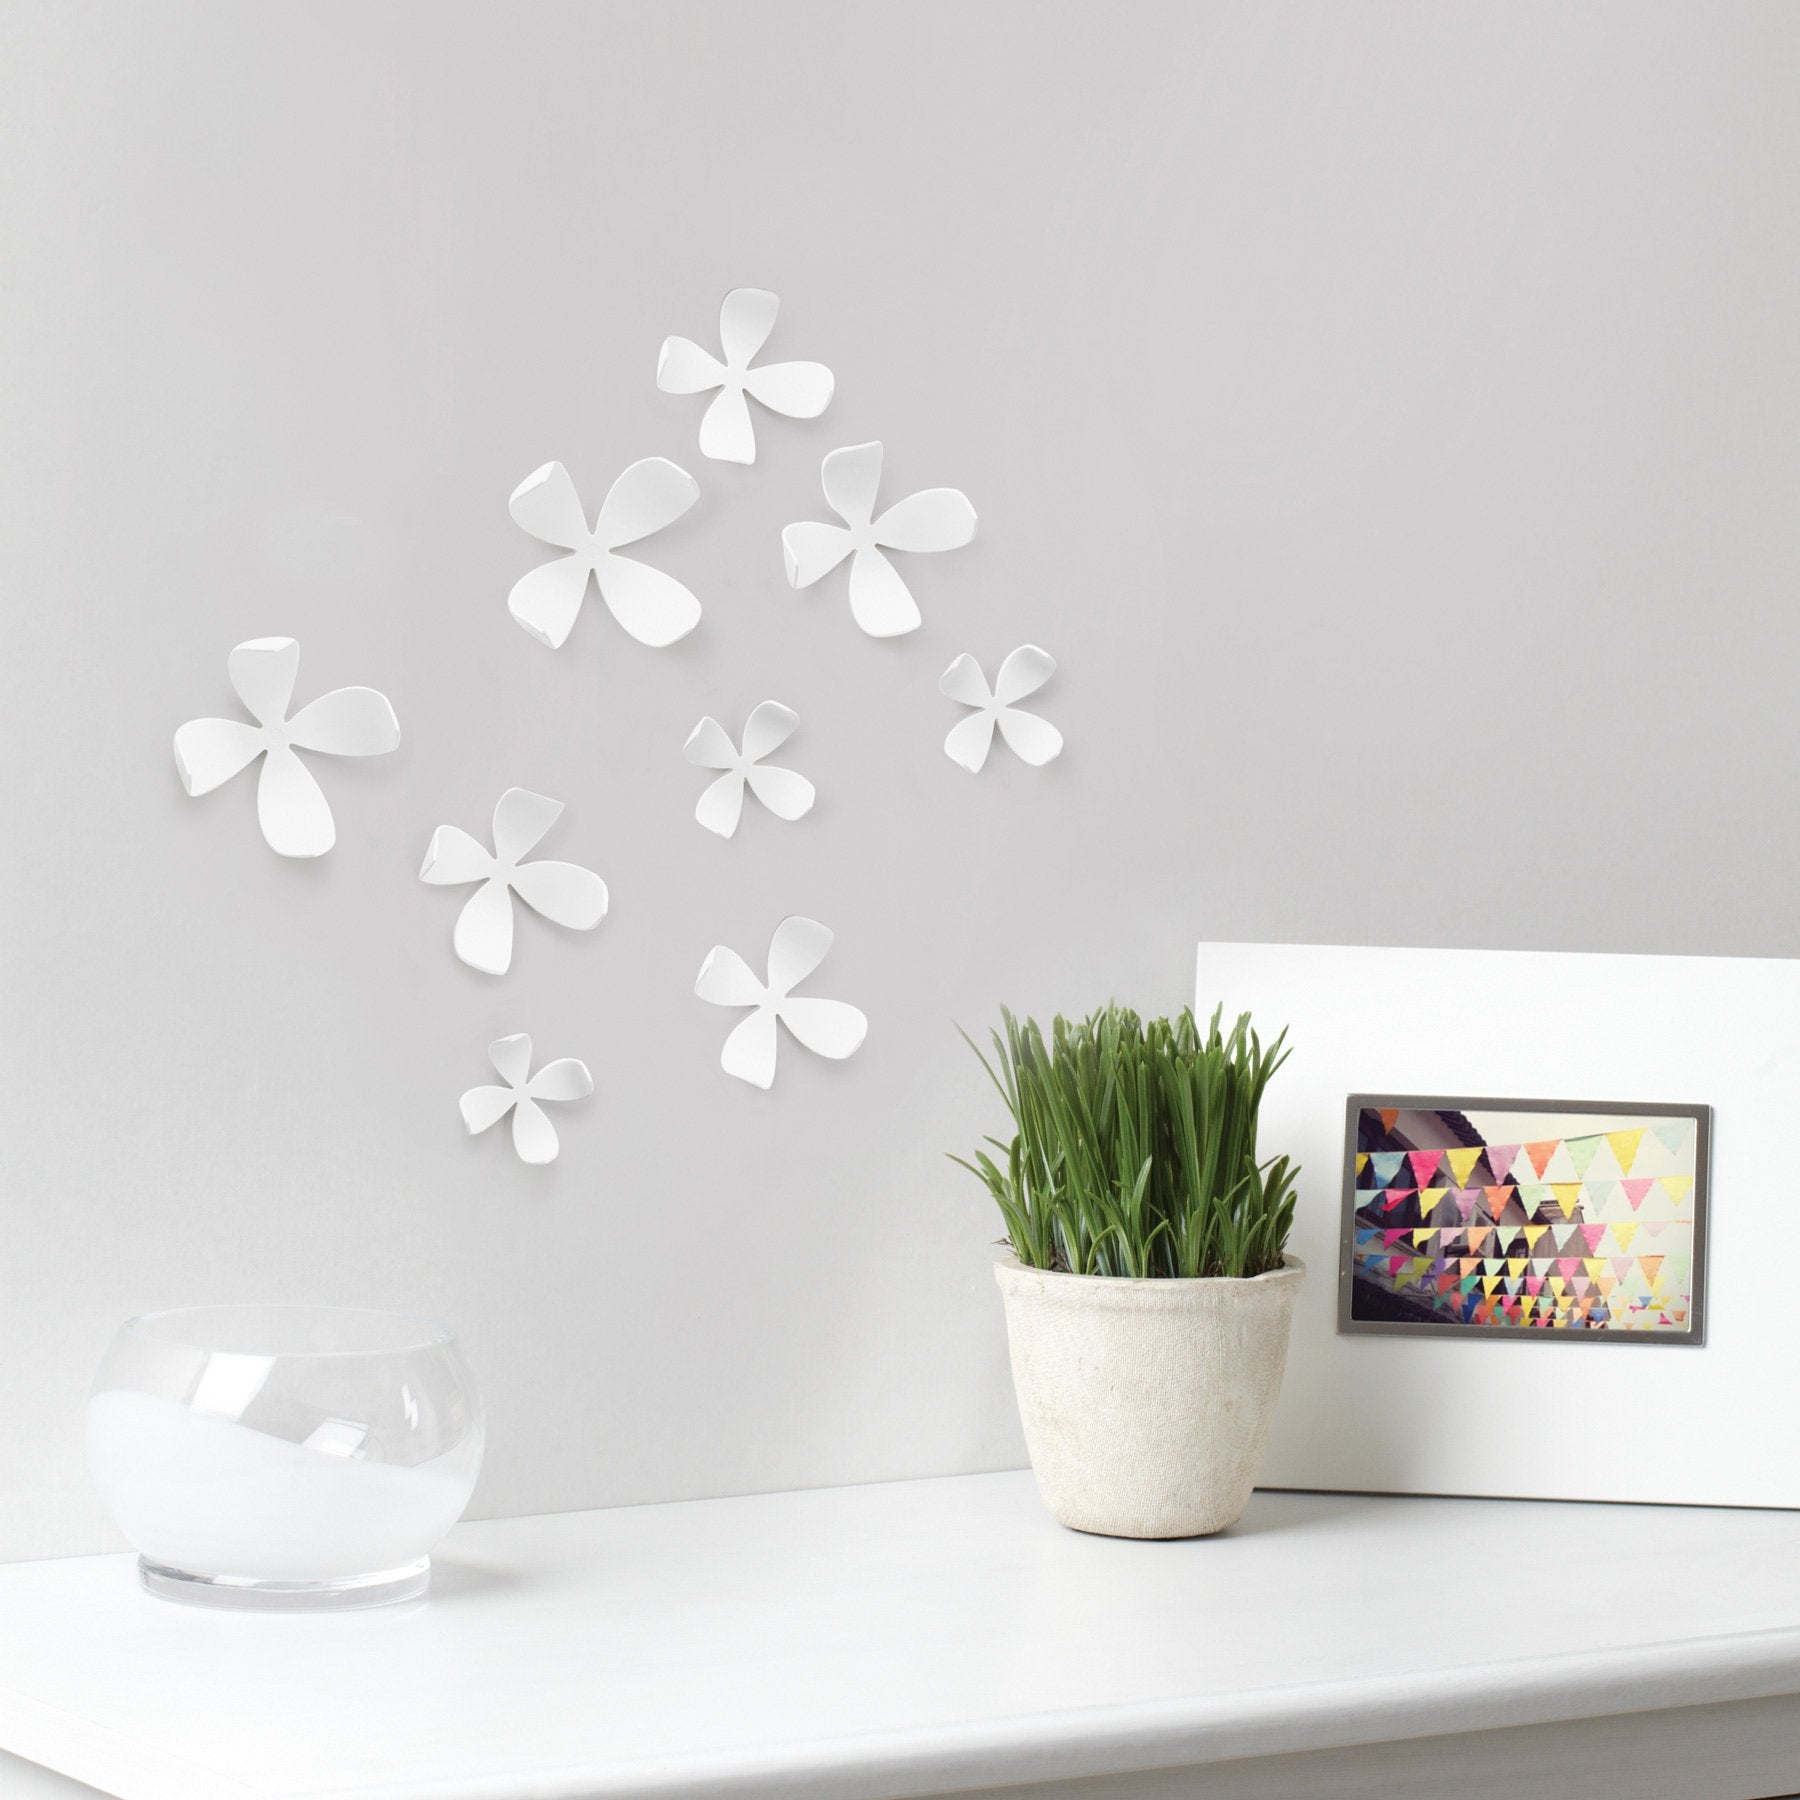 Wallflower Wall Decor - White